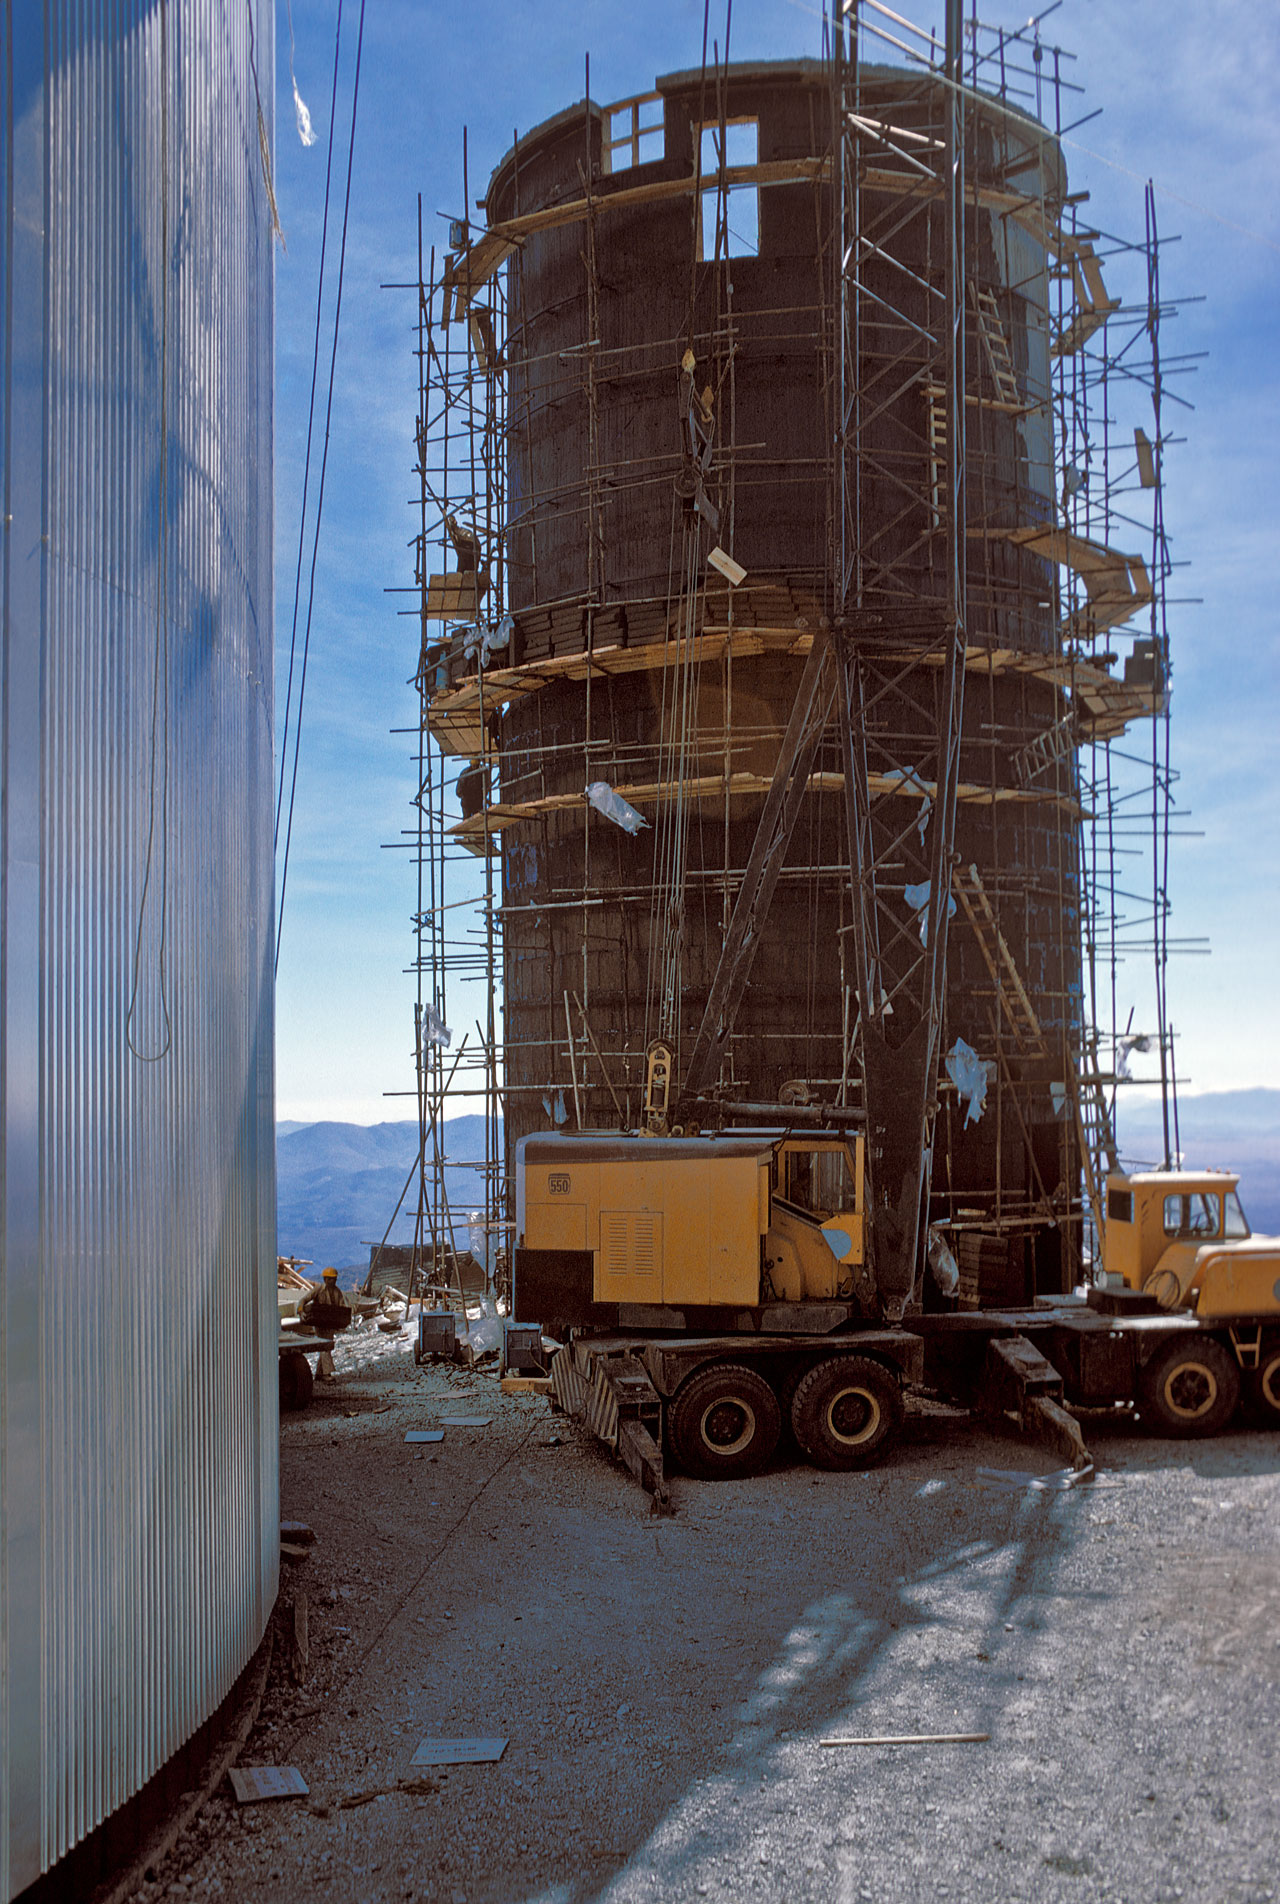 Construction of the Coudé Auxiliary Telescope